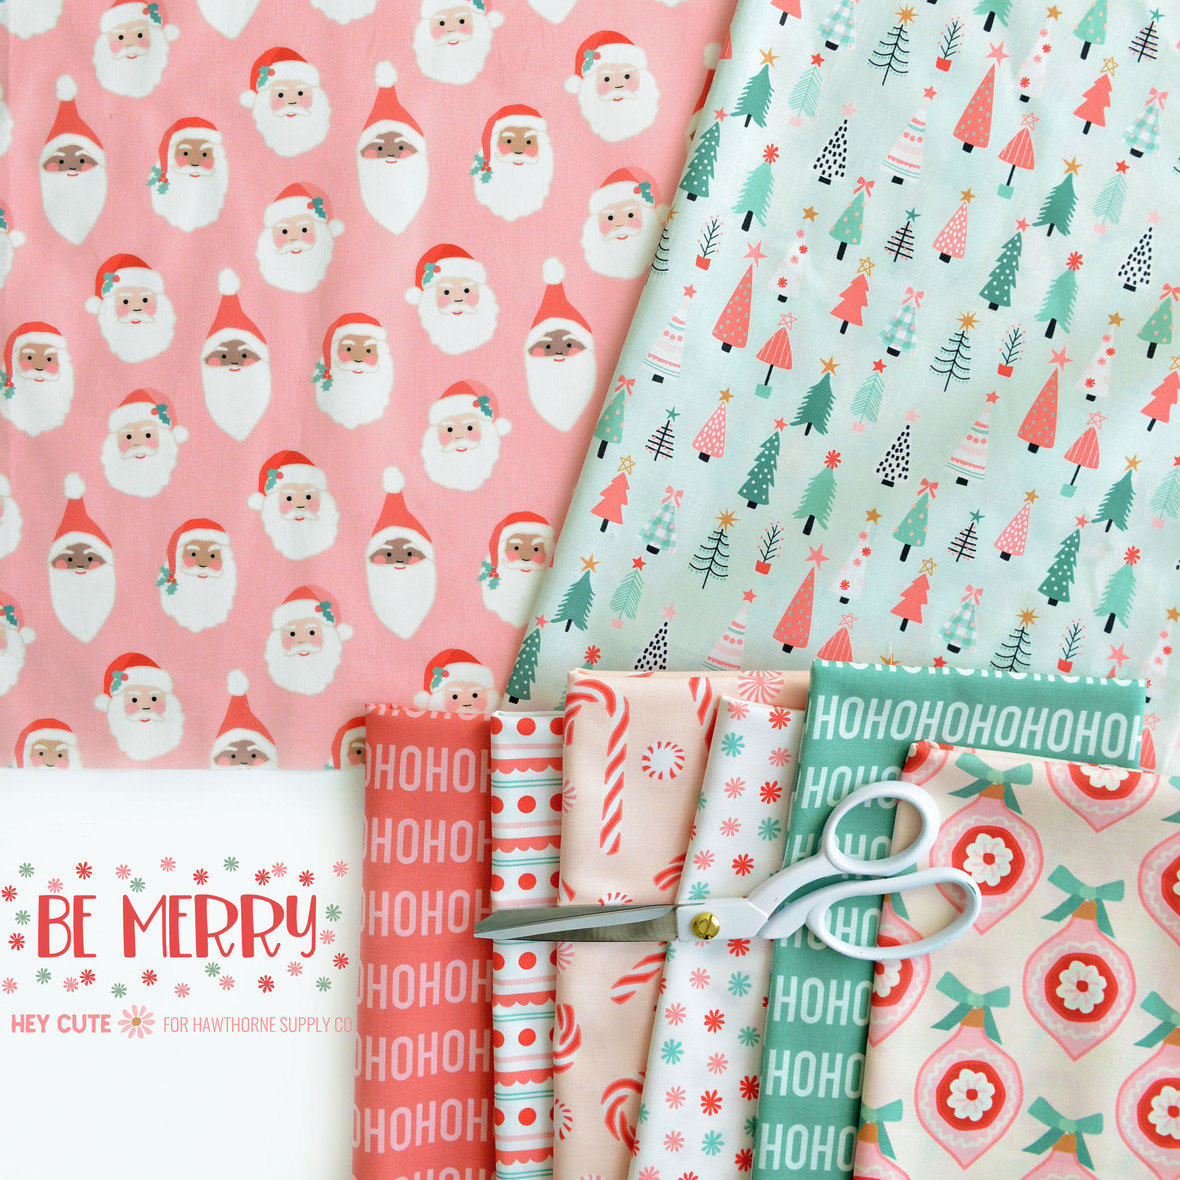 Be-Merry-Hey-Cute-Design-at-Hawthorne-Supply-Co